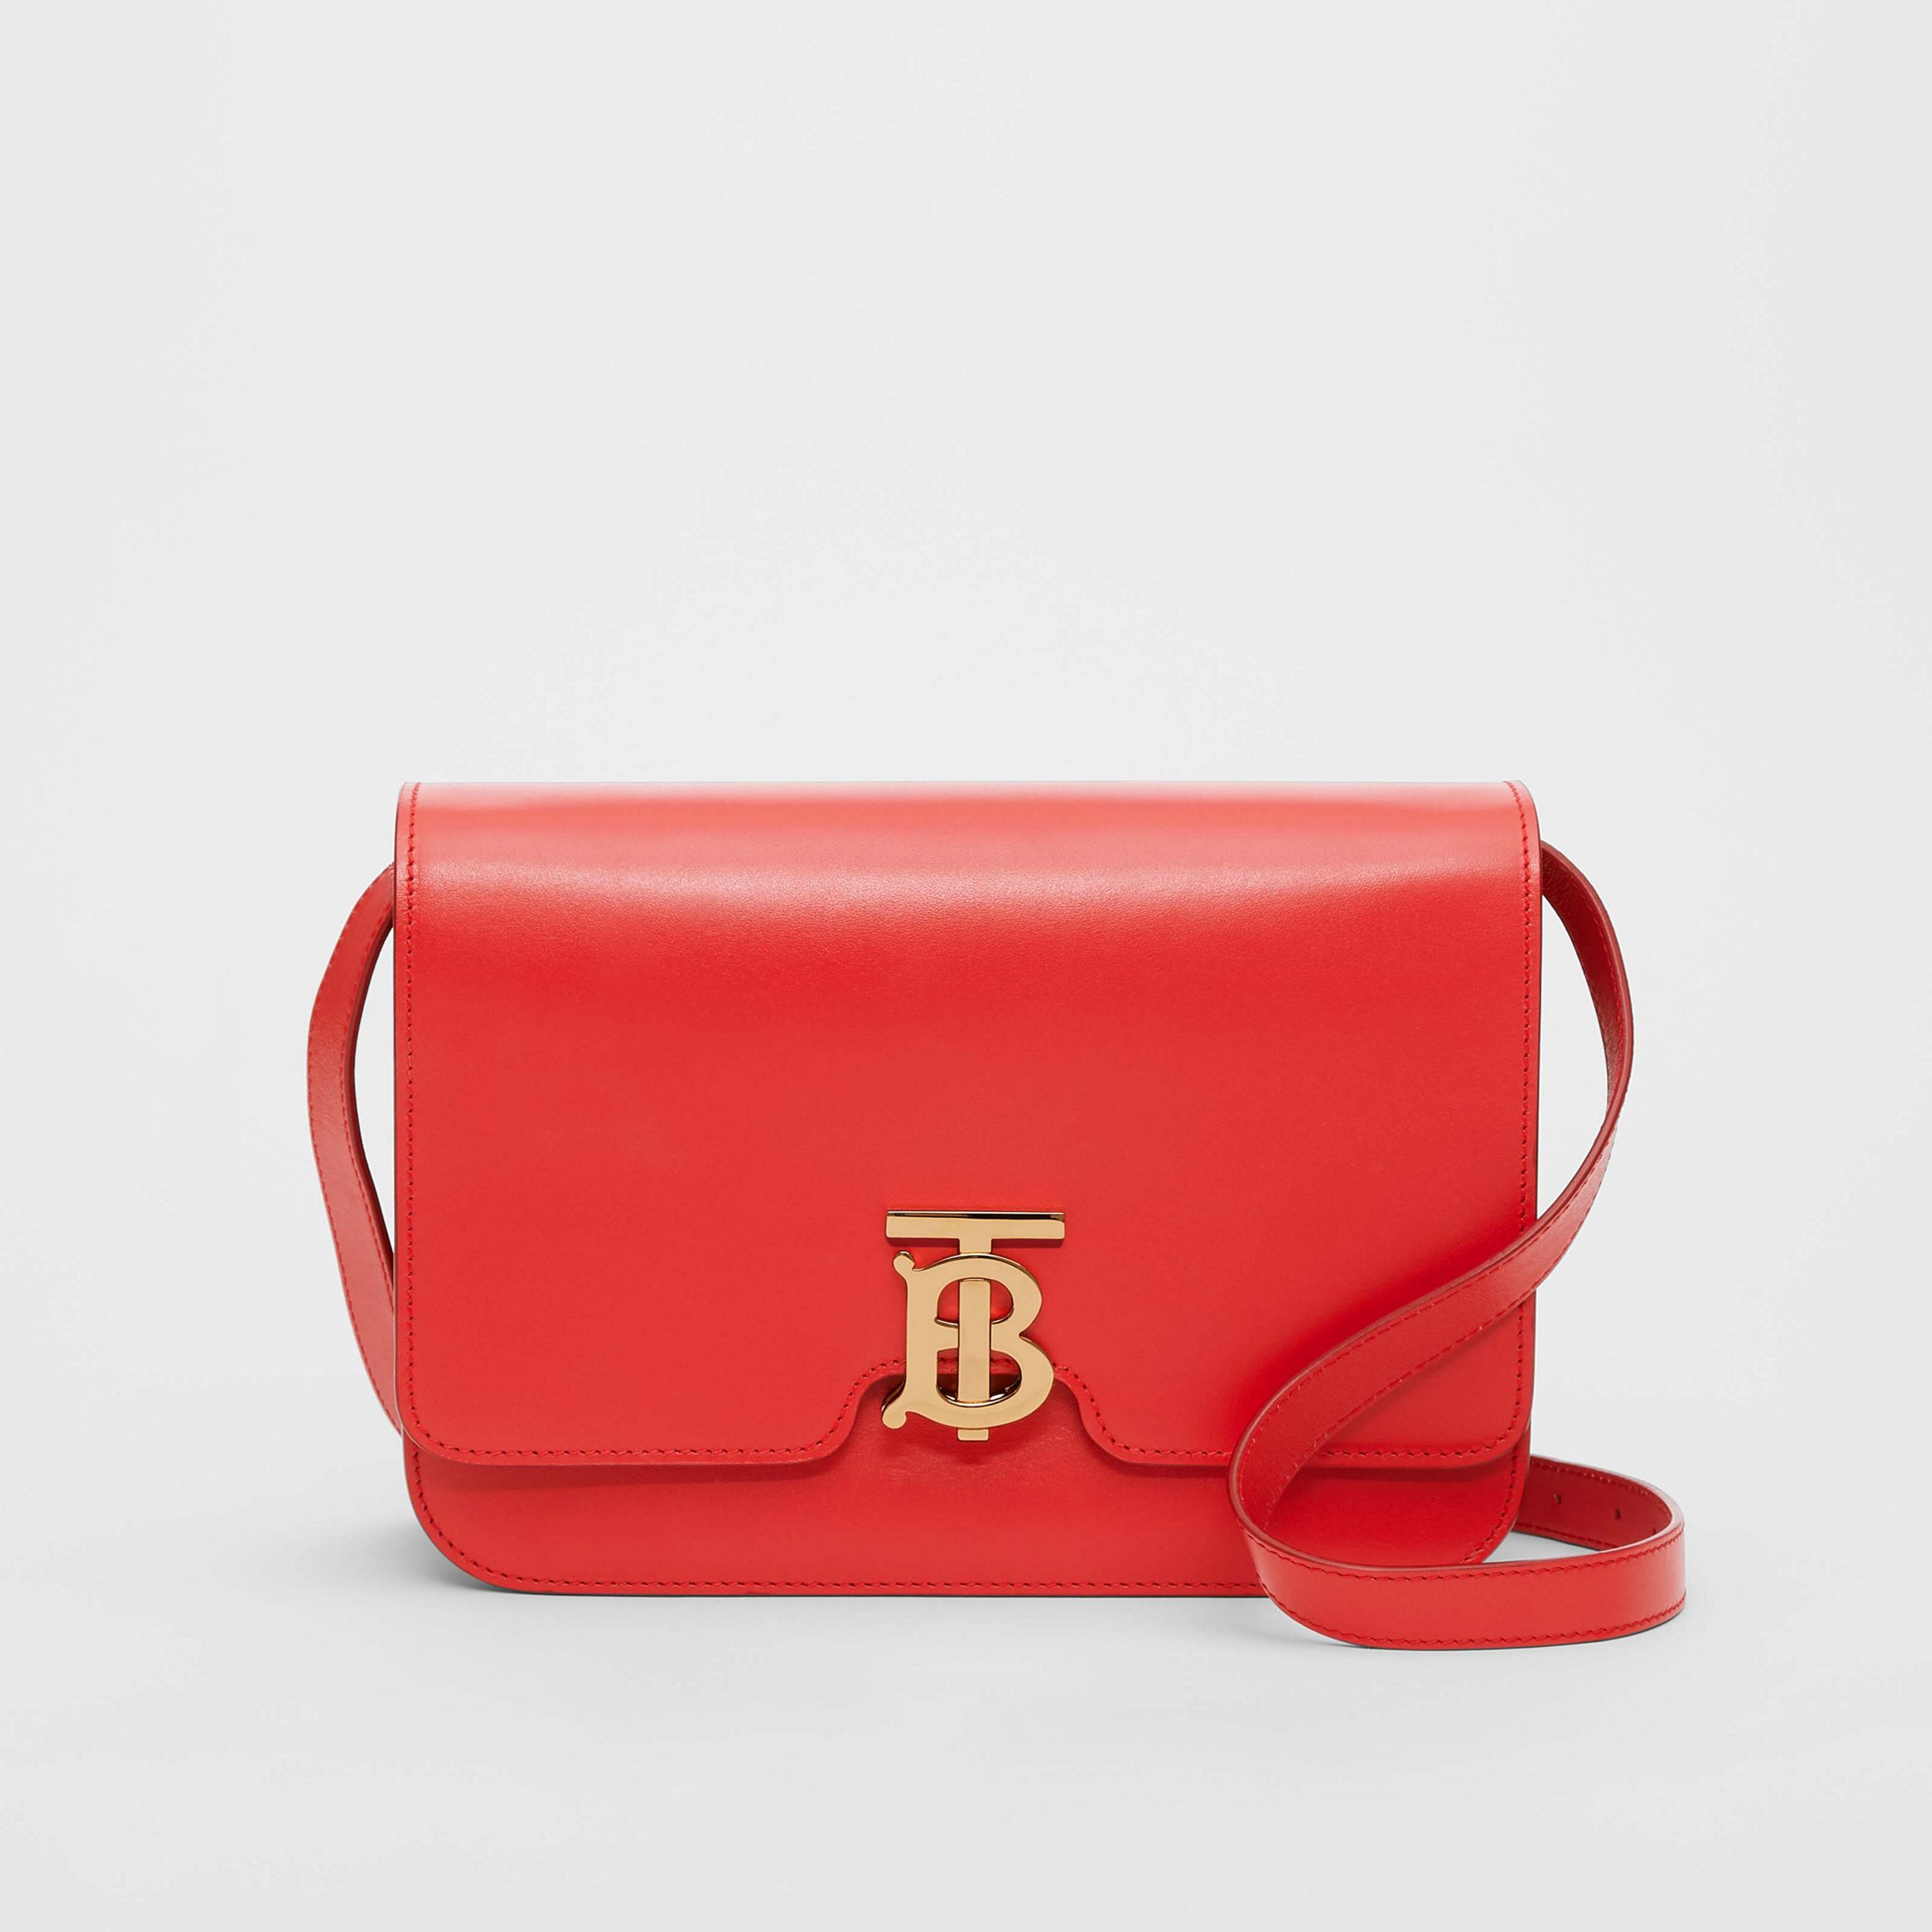 Medium Leather TB Bag in Bright Red - Women | Burberry - 1